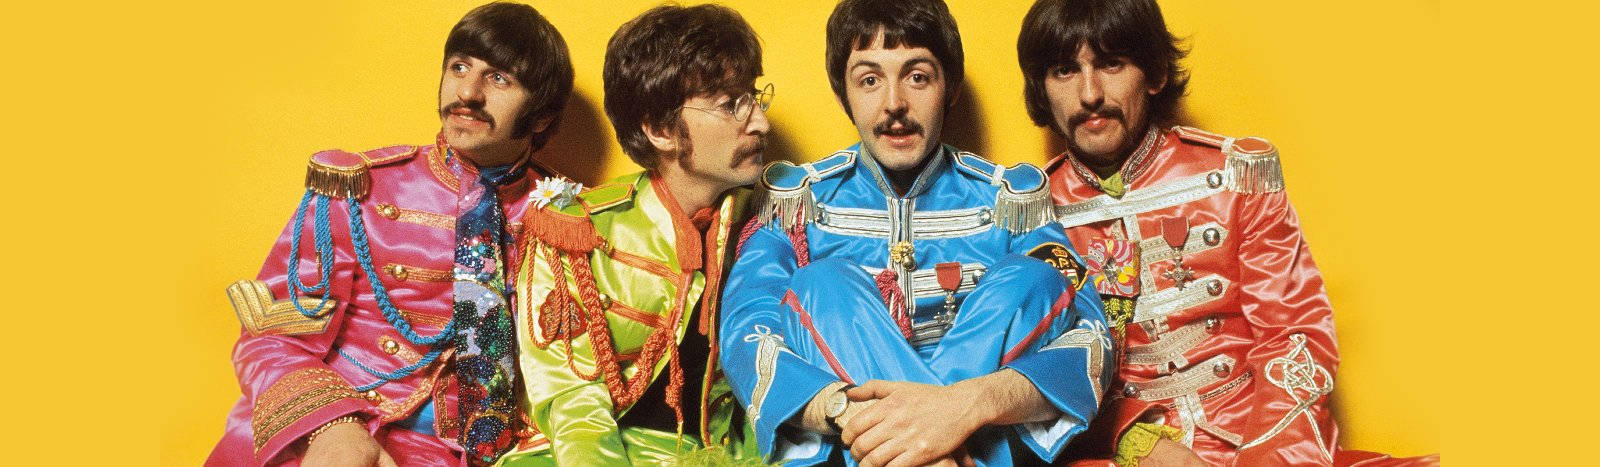 The Beatles from Sgt. Pepper